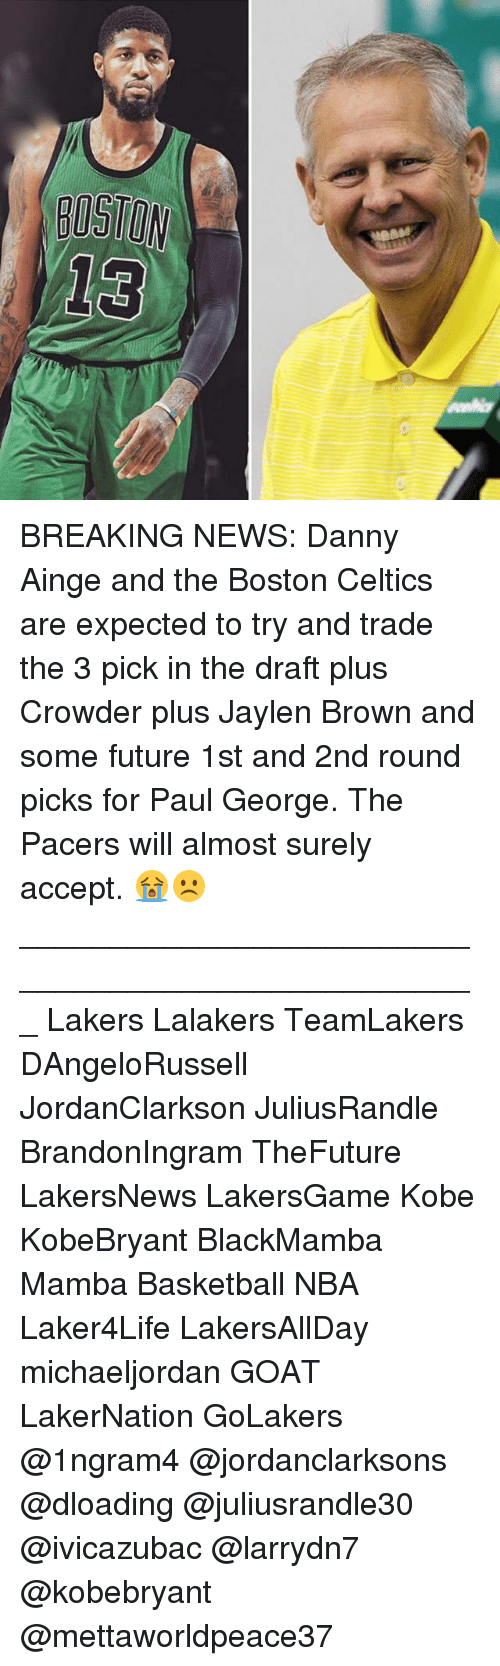 Basketball, Boston Celtics, and Future: D13 BREAKING NEWS: Danny Ainge and the Boston Celtics are expected to try and trade the 3 pick in the draft plus Crowder plus Jaylen Brown and some future 1st and 2nd round picks for Paul George. The Pacers will almost surely accept. 😭☹️ ___________________________________________________ Lakers Lalakers TeamLakers DAngeloRussell JordanClarkson JuliusRandle BrandonIngram TheFuture LakersNews LakersGame Kobe KobeBryant BlackMamba Mamba Basketball NBA Laker4Life LakersAllDay michaeljordan GOAT LakerNation GoLakers @1ngram4 @jordanclarksons @dloading @juliusrandle30 @ivicazubac @larrydn7 @kobebryant @mettaworldpeace37